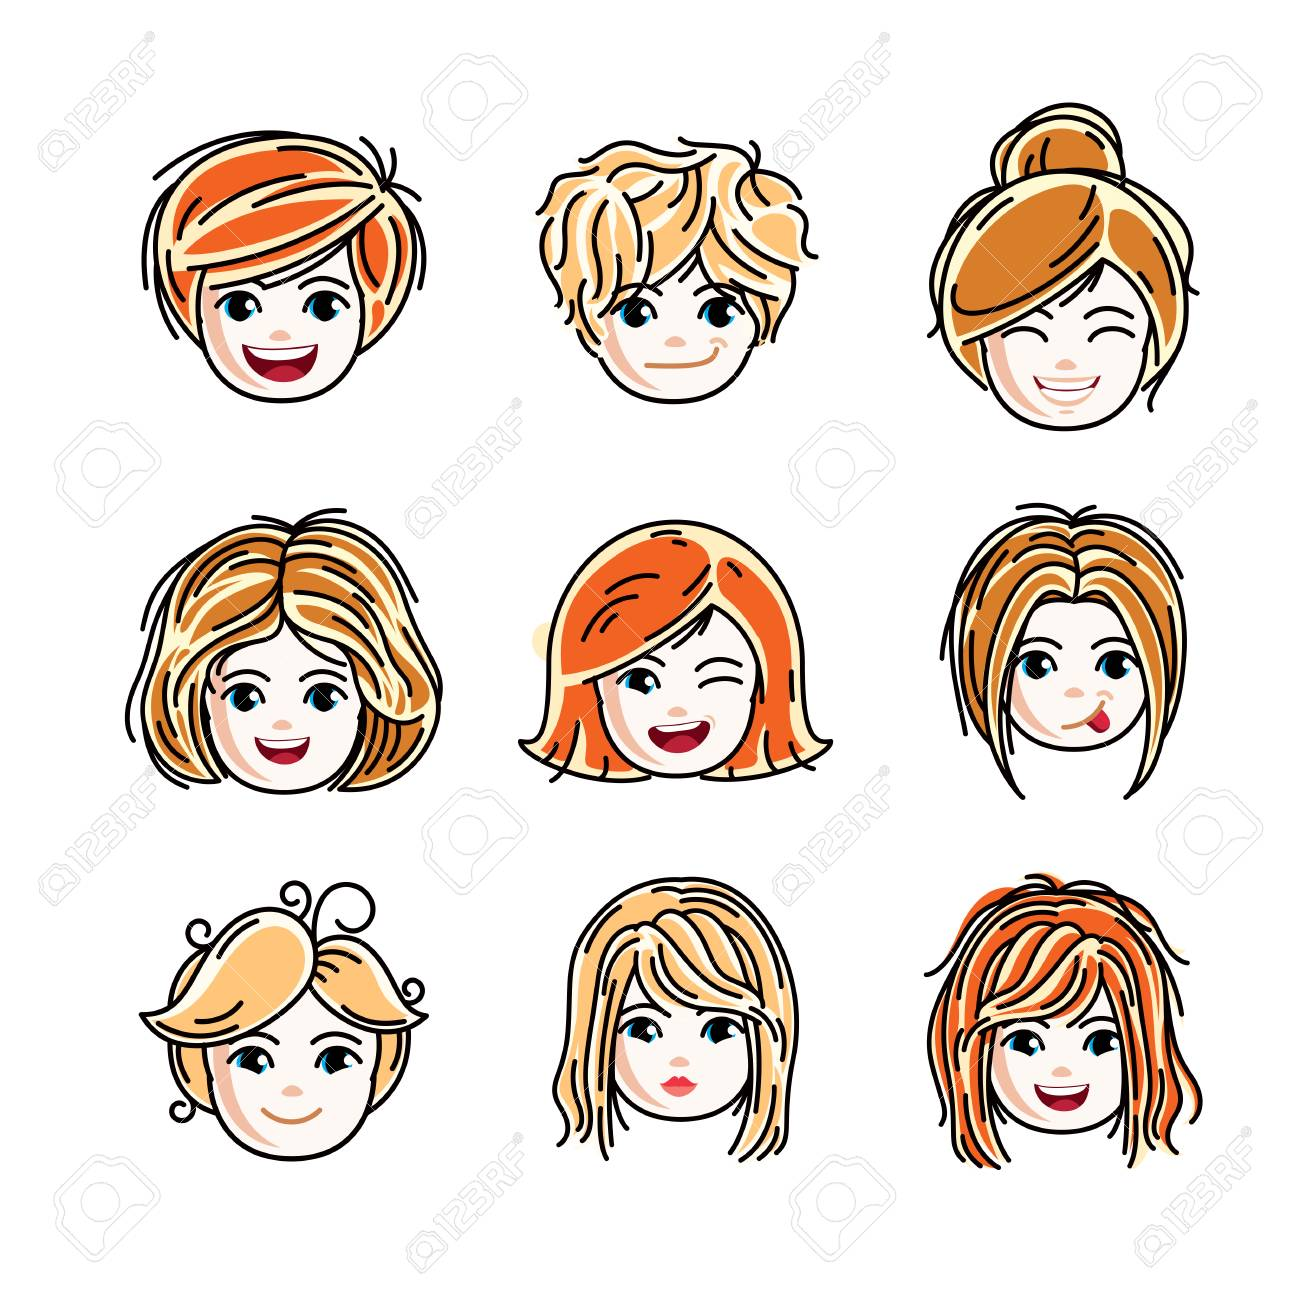 Jugendlicher Cool Clipart Stock Photo